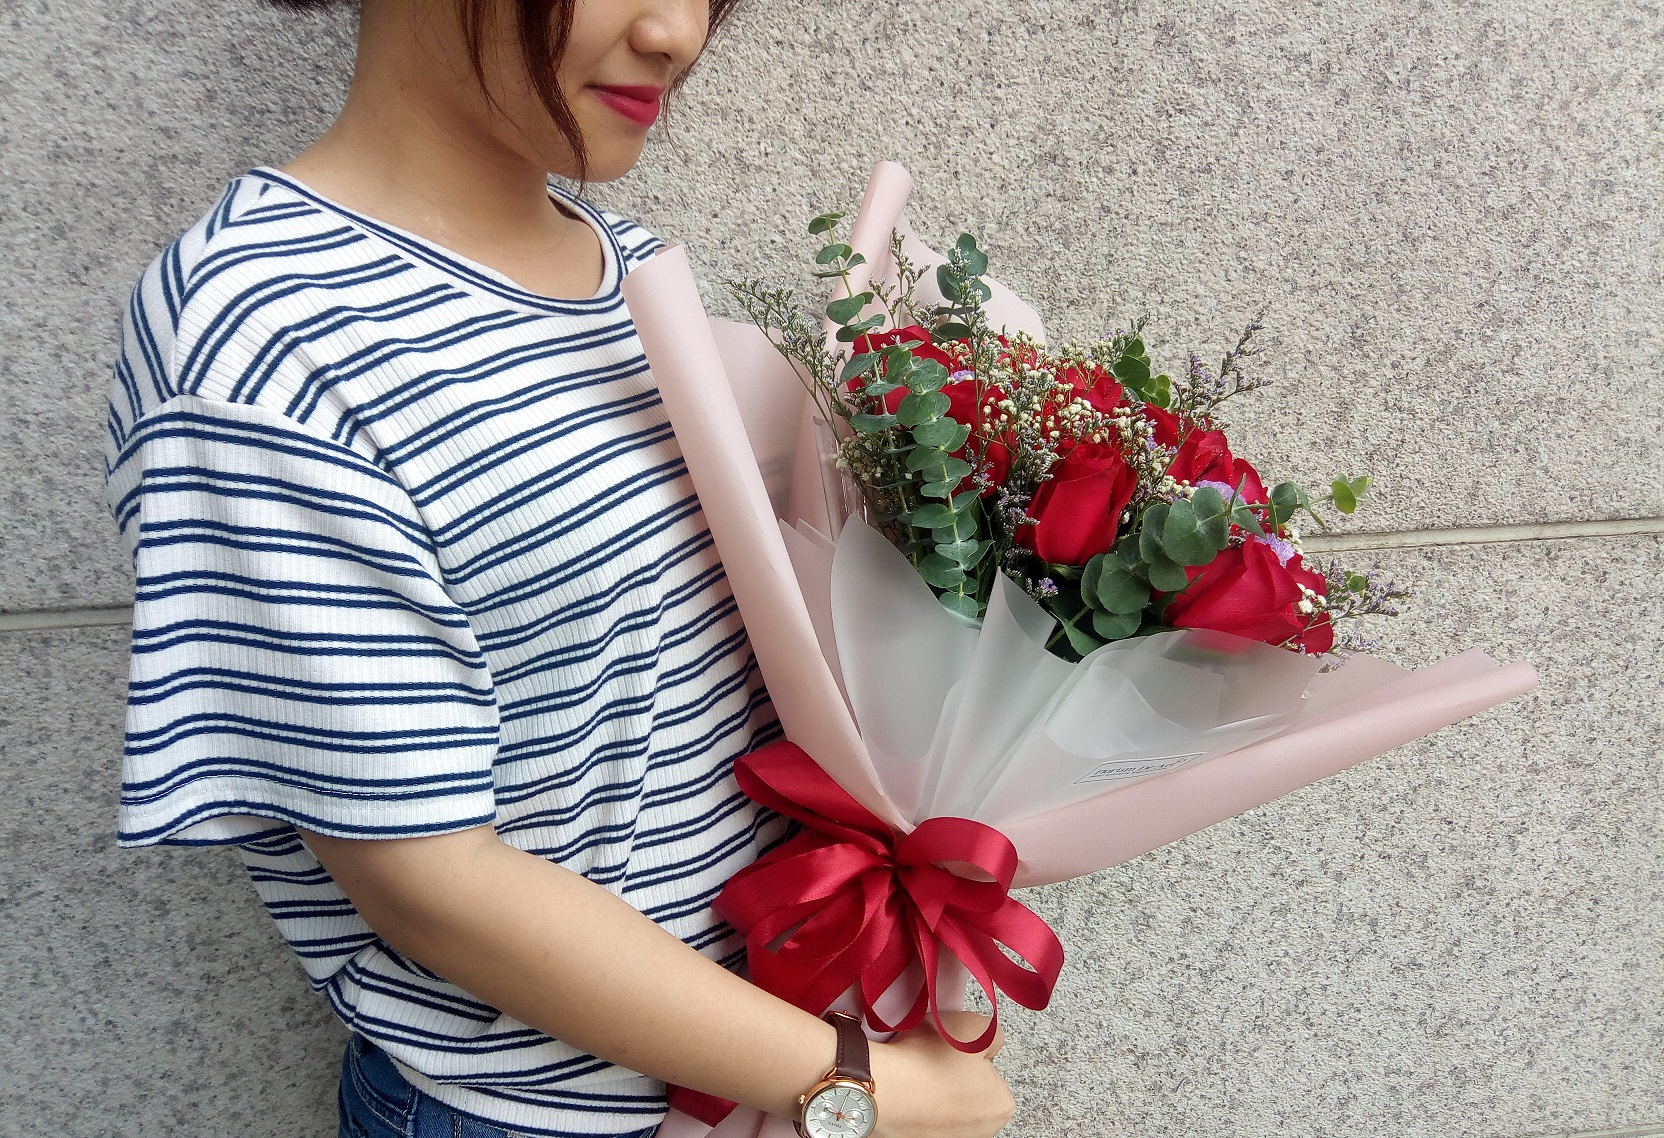 Florism De Art | Luxury Florist In The Heart Of Kuala Lumpur | Free Delivery Same Day